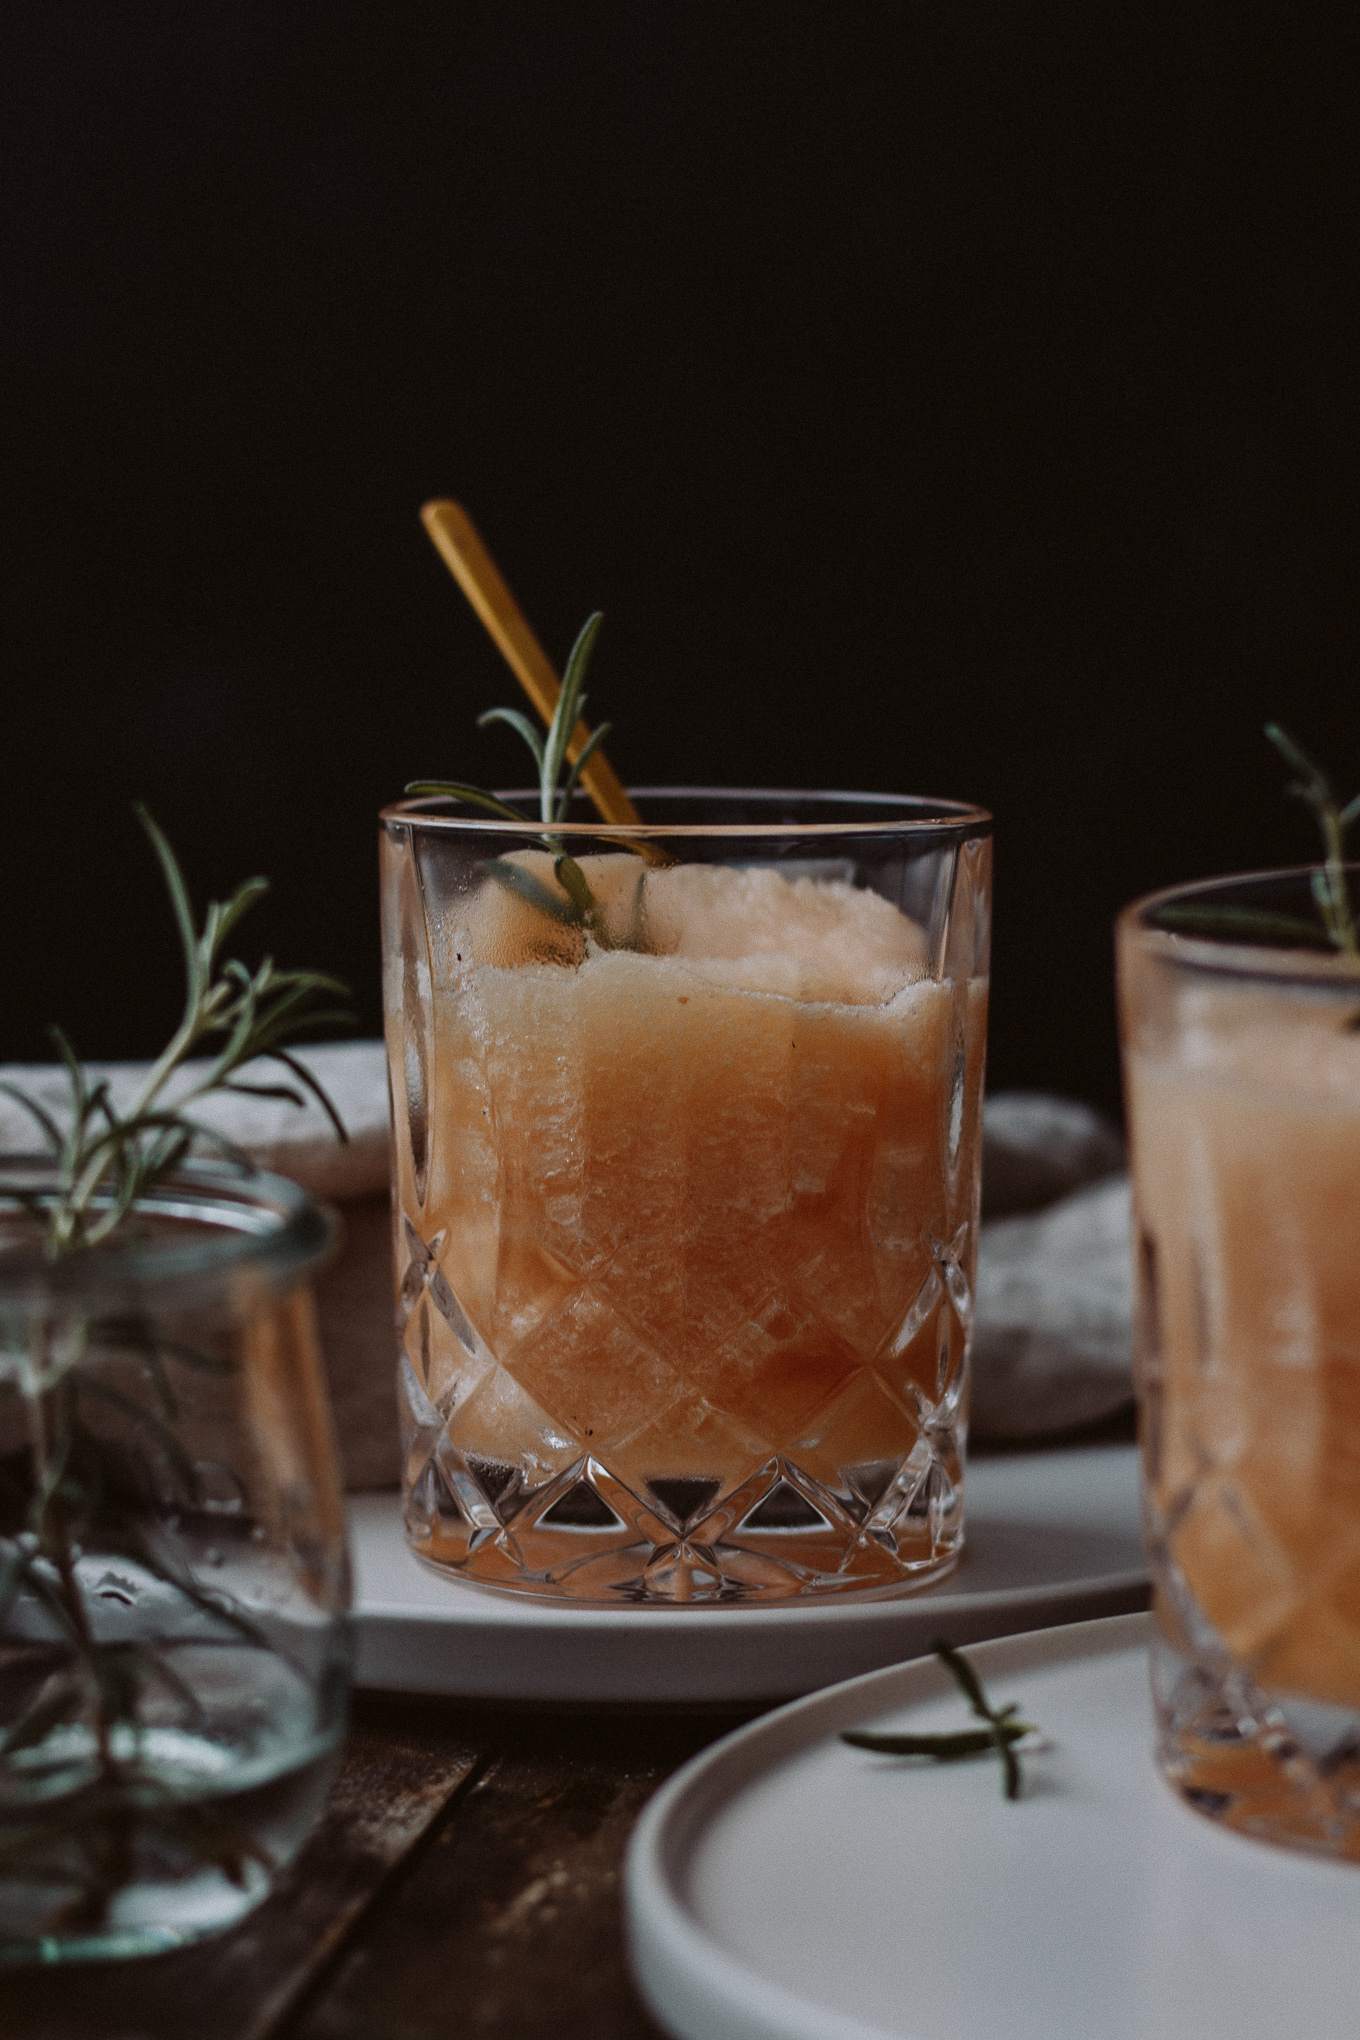 2019 The Daily Dose Bubbly Friday Boozy Nektarinen Rosmarin Slush